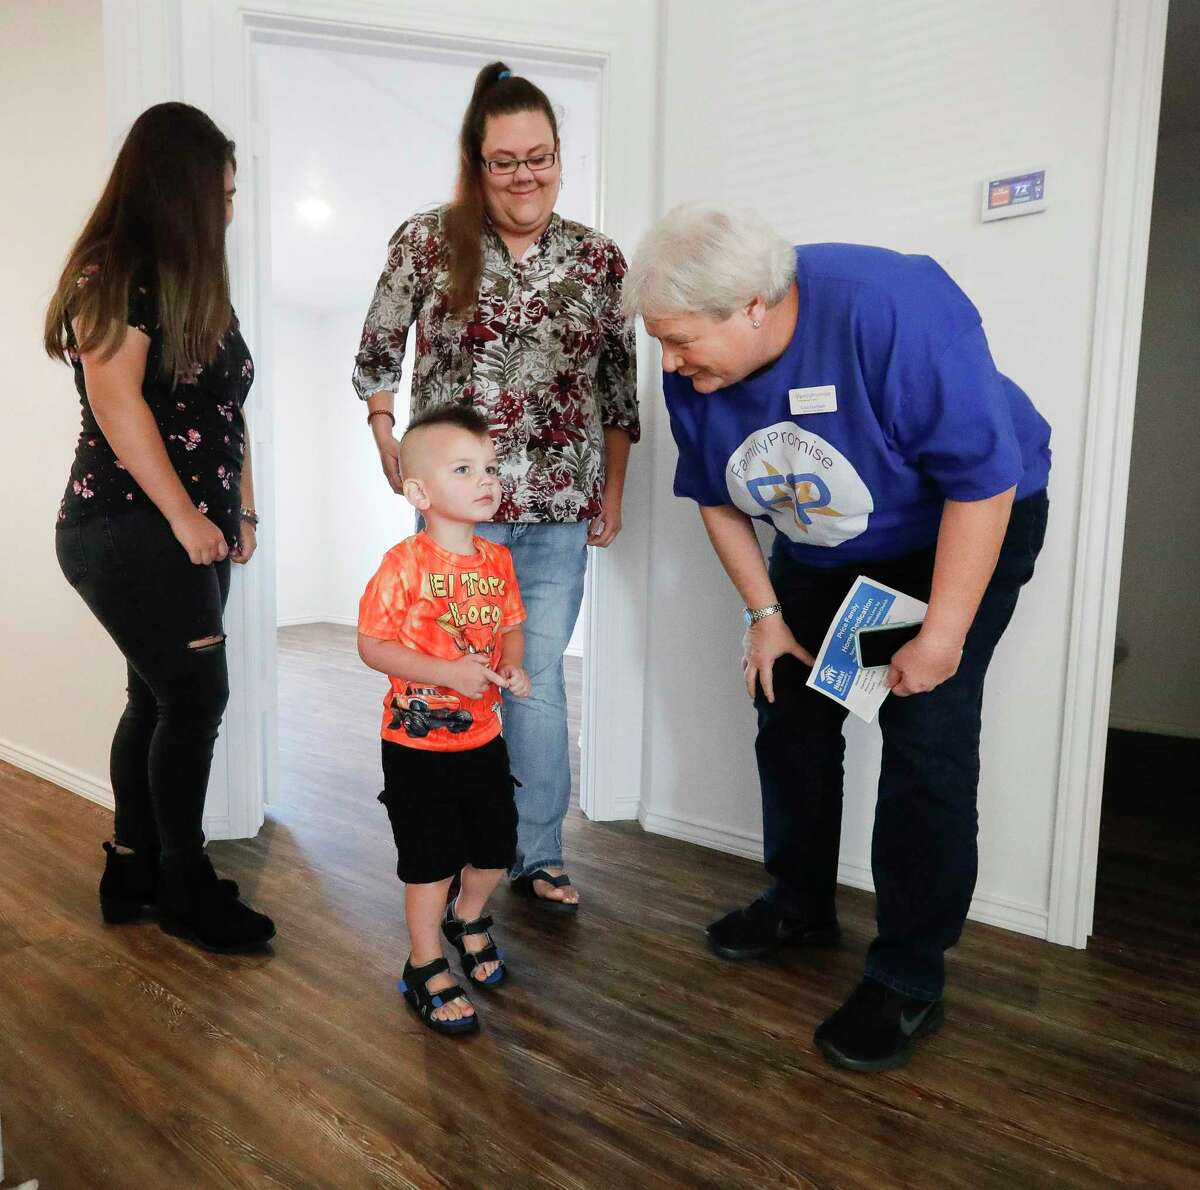 Lisa Garman with Family Promise asks Samuel Price his favorite part of the family's new home from Habitat For Humanity as his mother, Brenda, looks on Saturday, July 31, 2021, in Conroe. Price is the first participant in the Family Promise program to receive a home from Habitat.